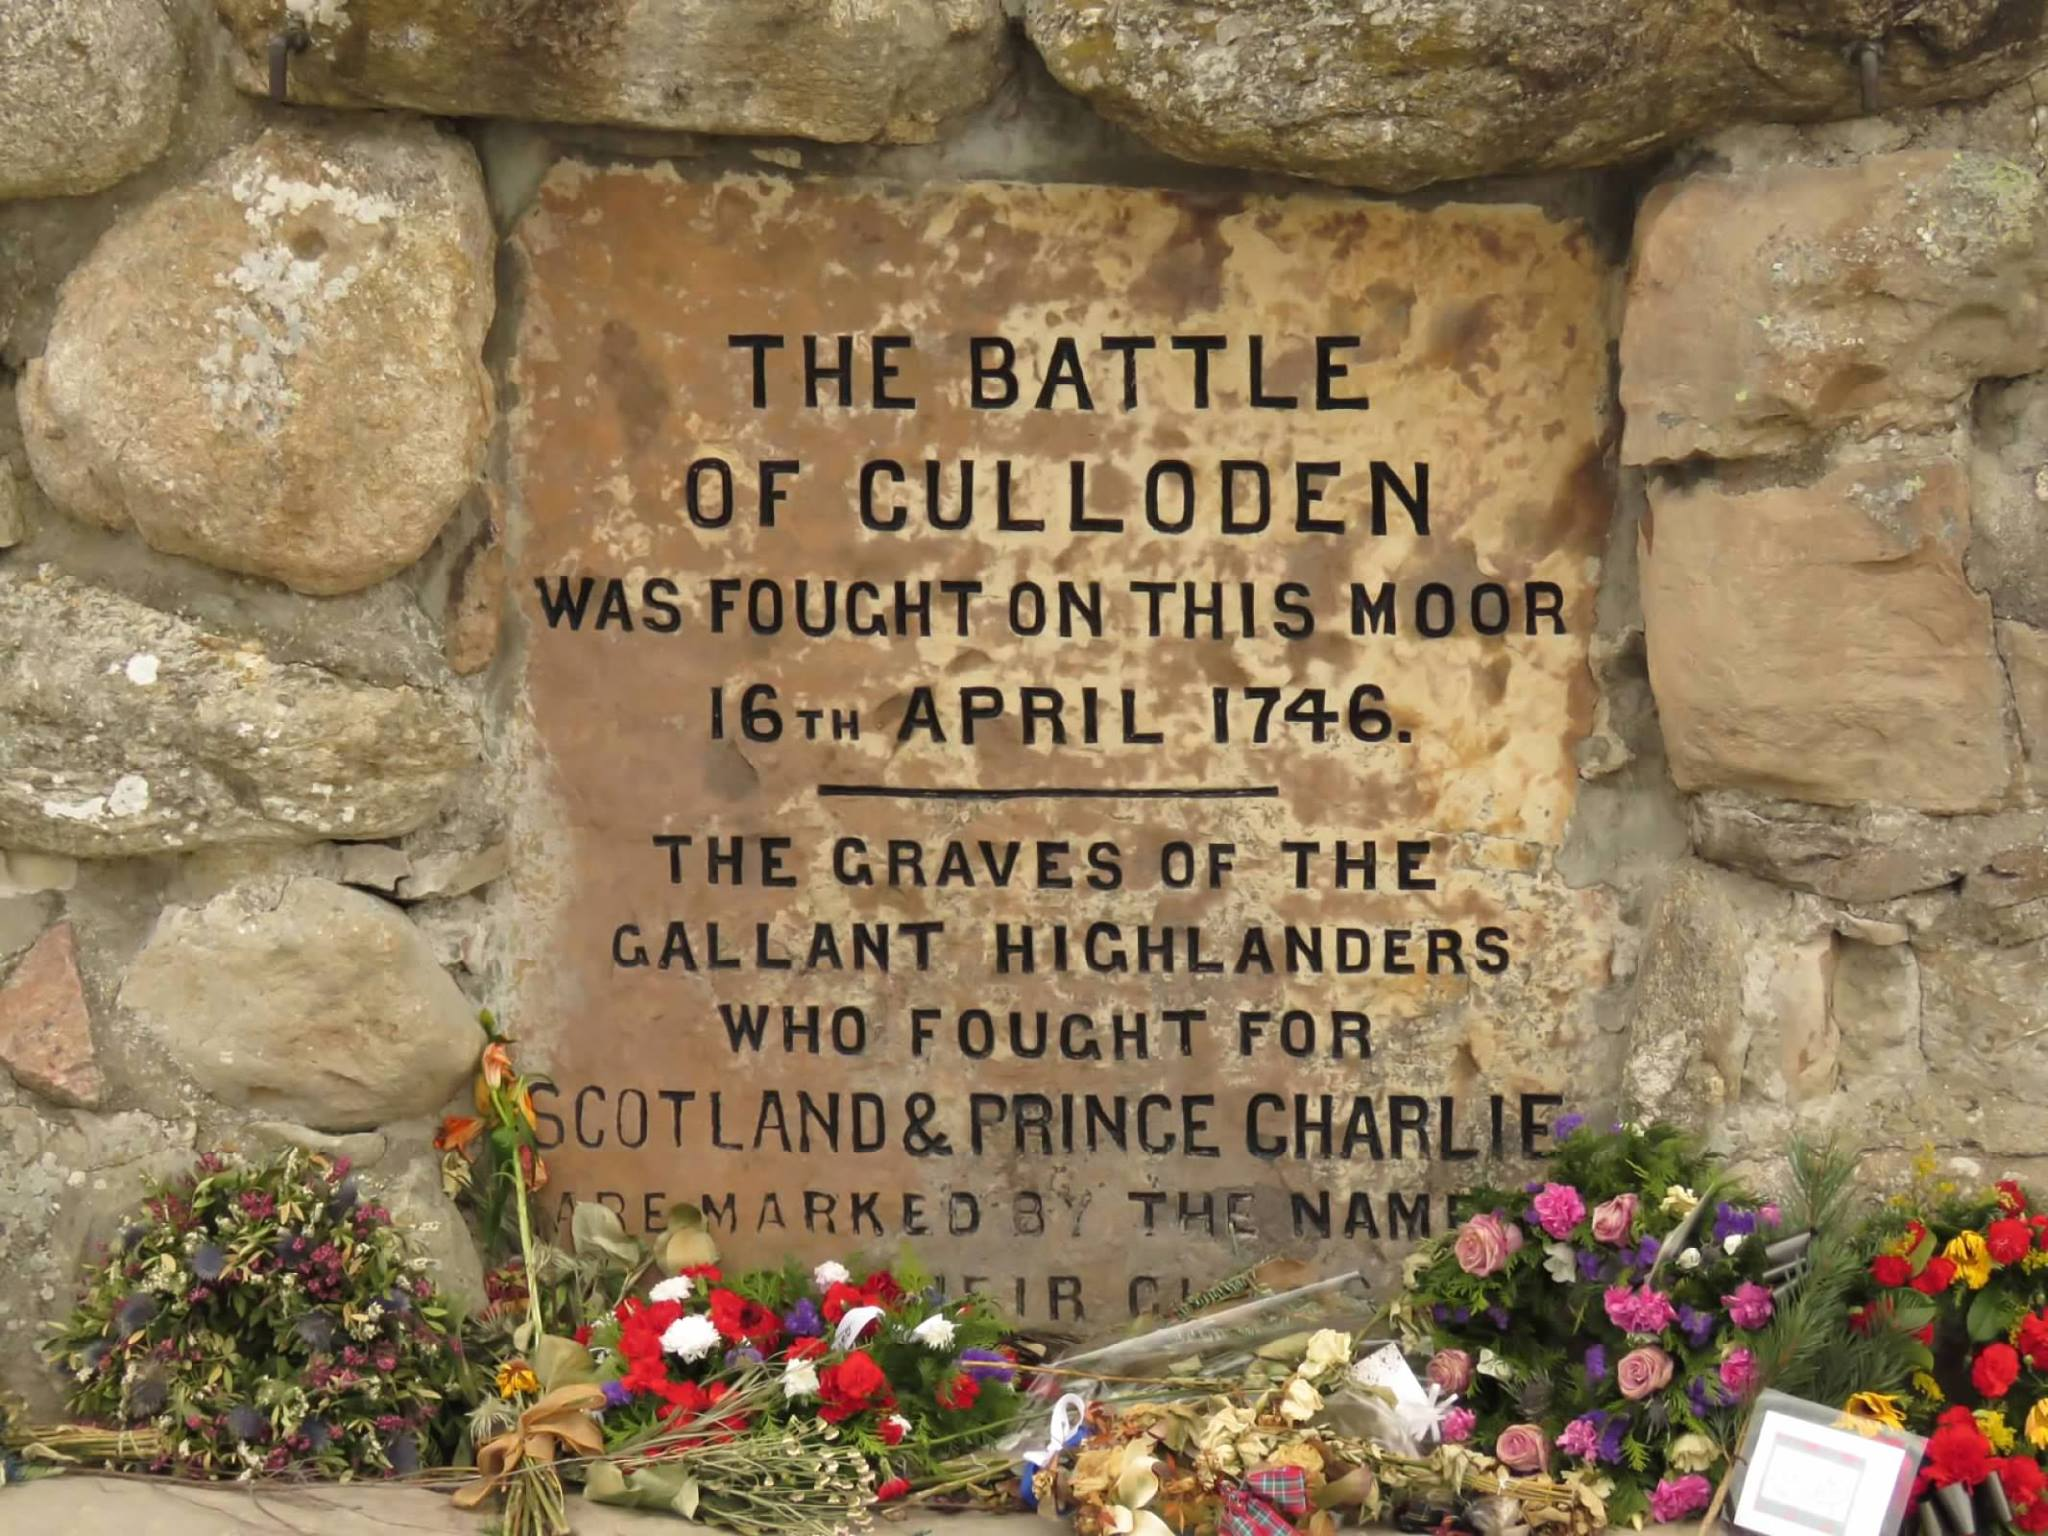 Culloden's memory